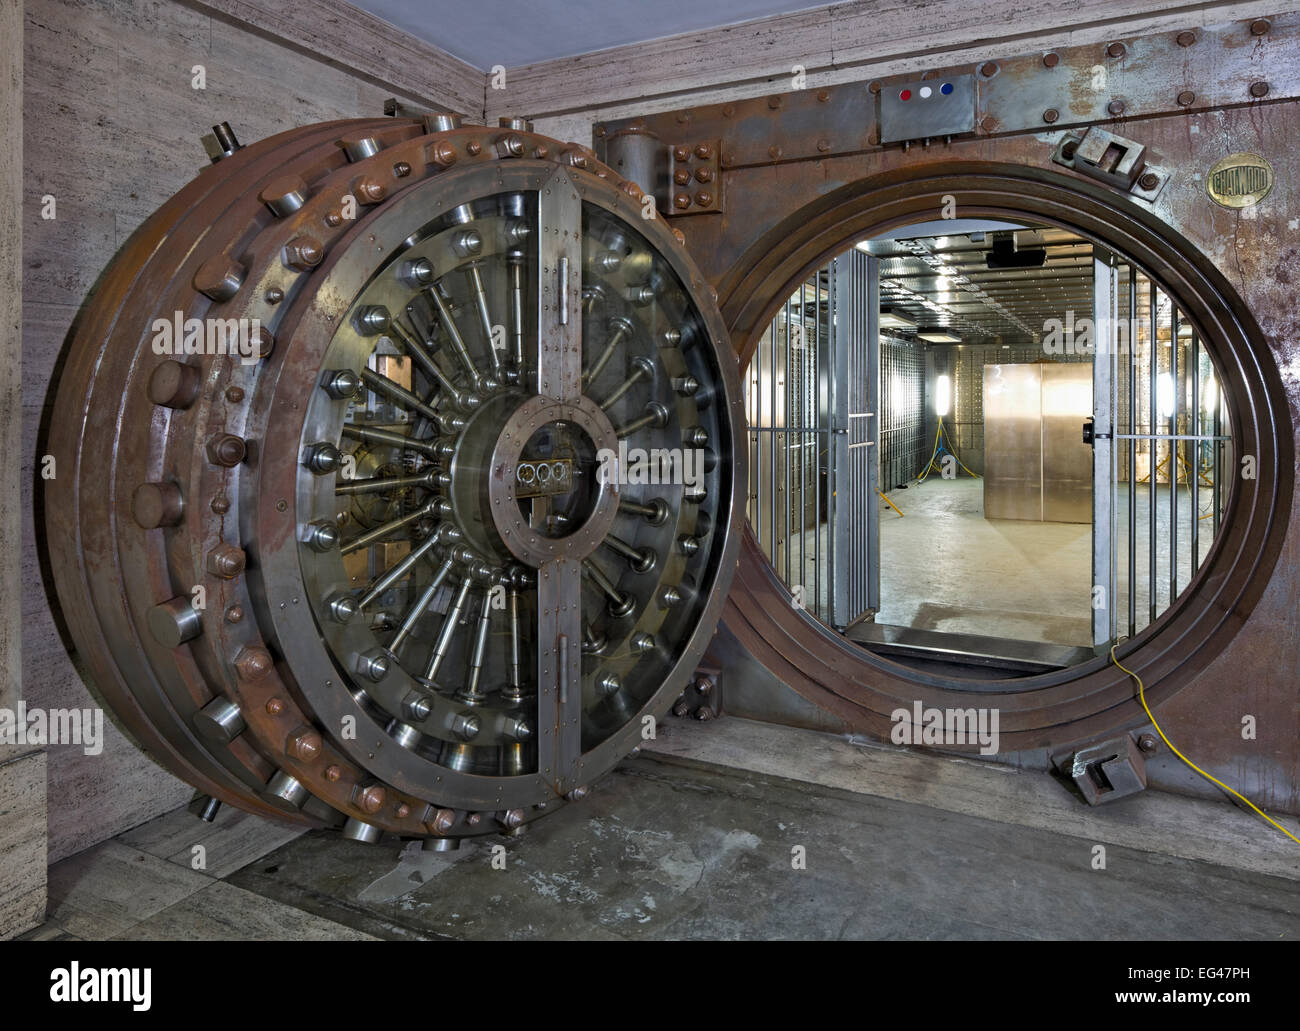 Huge bank vault door in a disused Bank - Stock Image & Vault Bank Stock Photos \u0026 Vault Bank Stock Images - Alamy